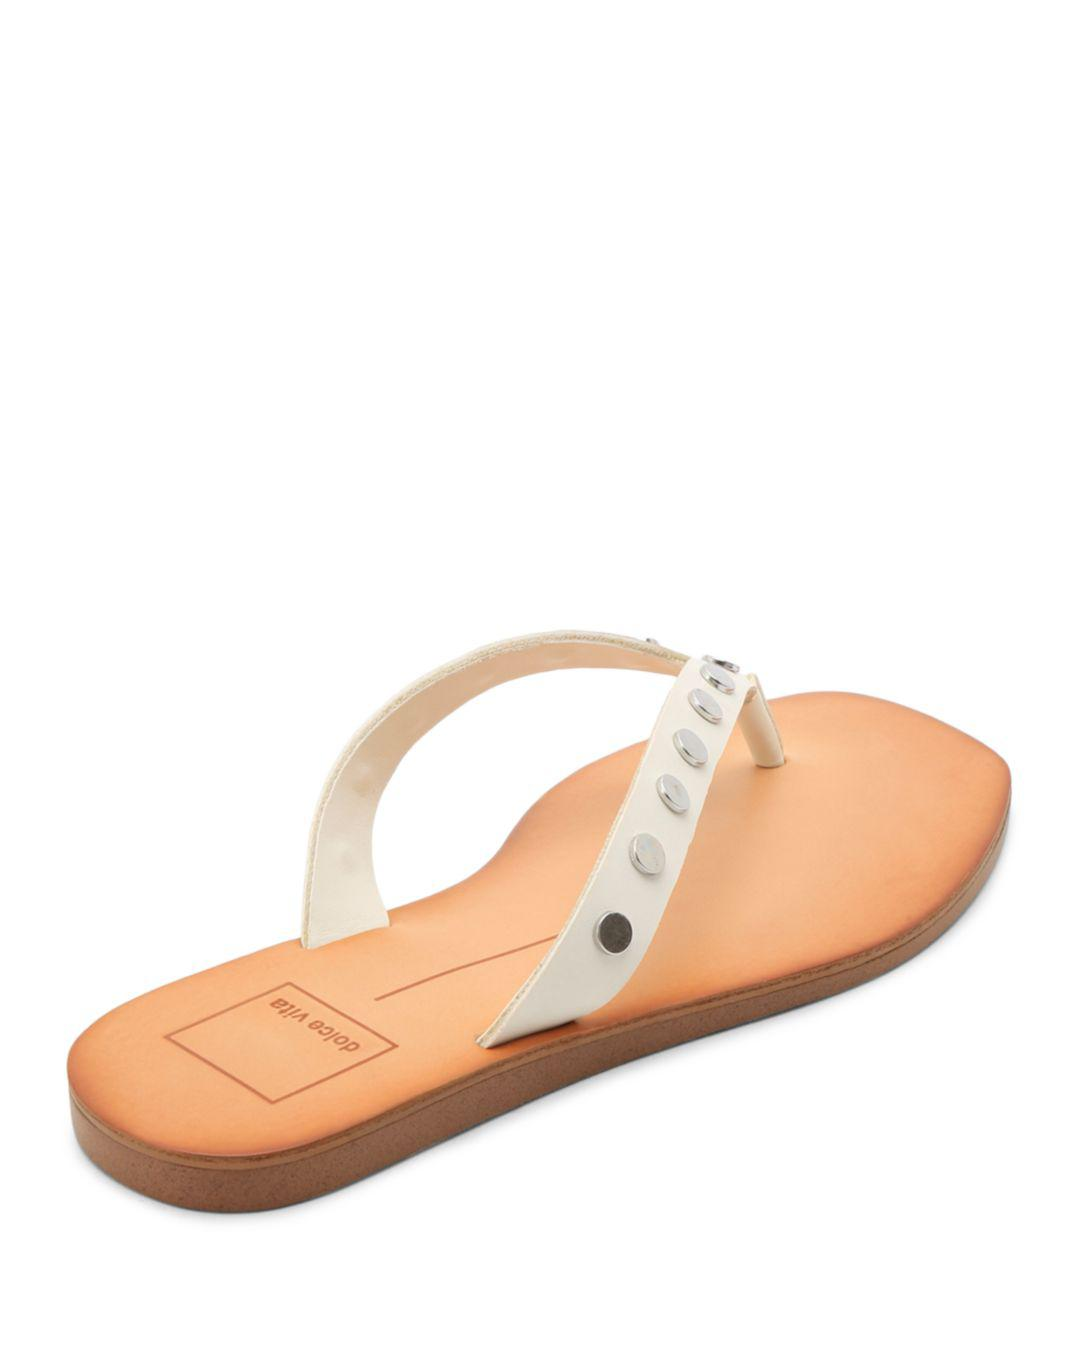 6c57667fa12 Lyst - Dolce Vita Women s Clyde Studded Thong Sandals in White